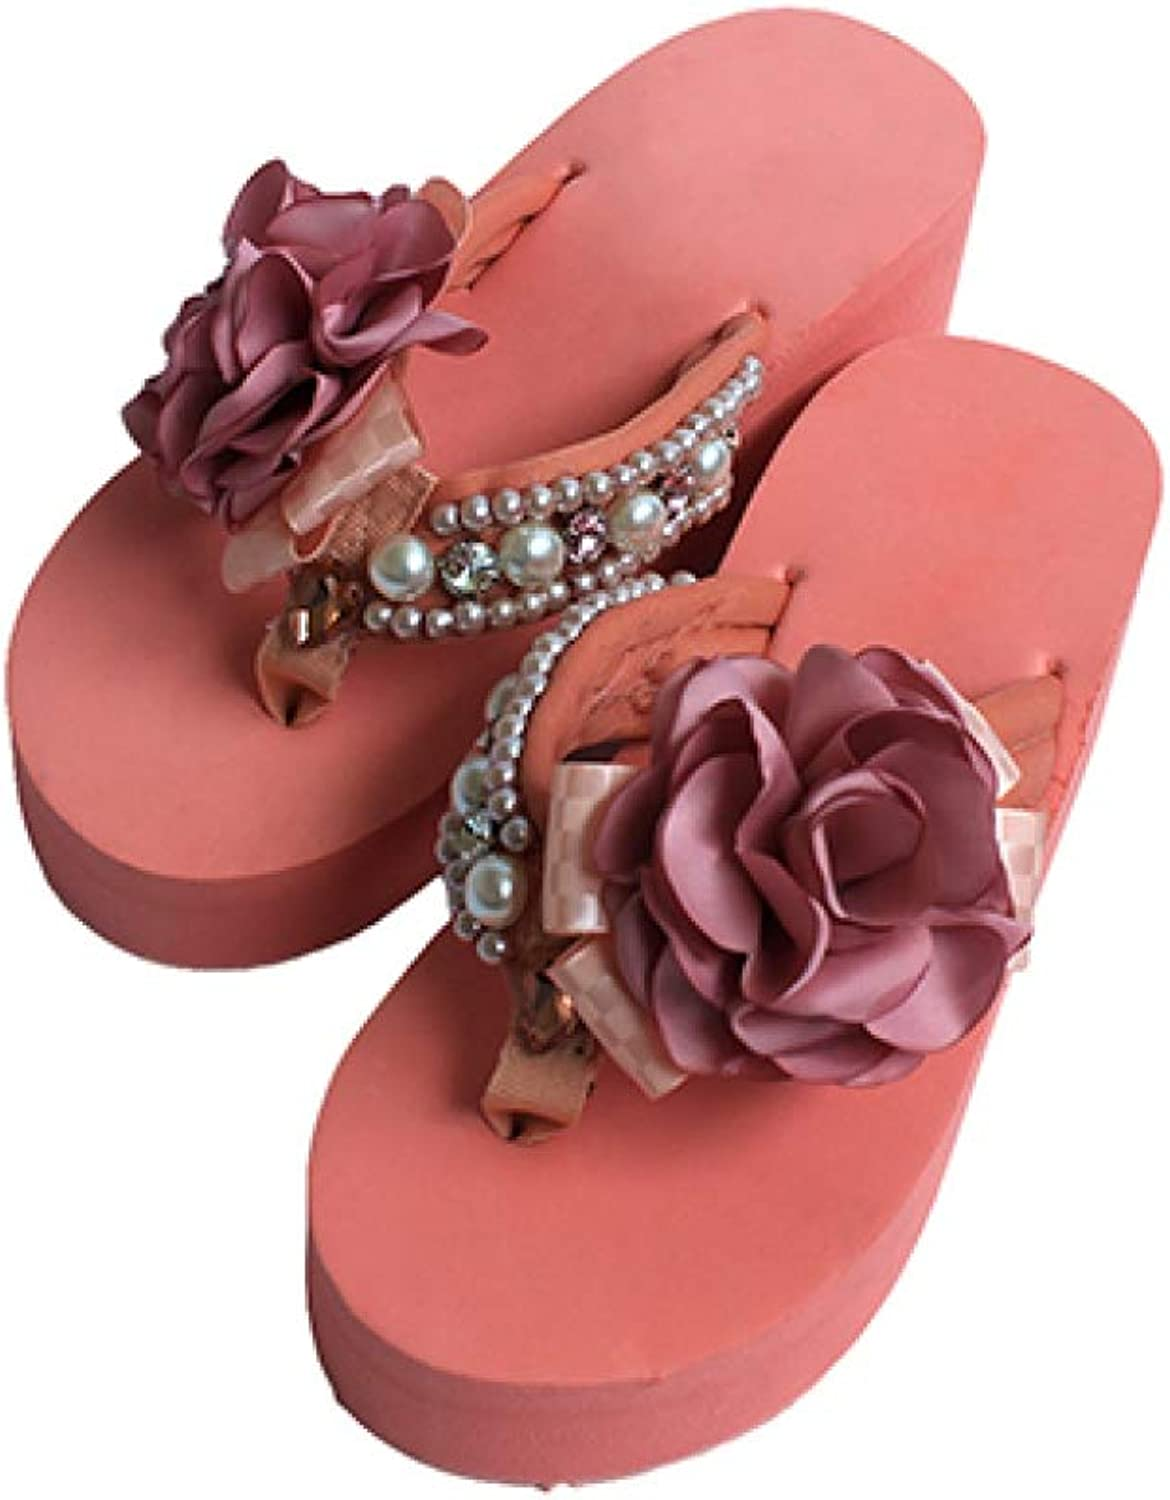 T-JULY Handcraft Pearls Rhinestone High Heels Flip Flops Platform Wedges Women Slippers Lady Slides